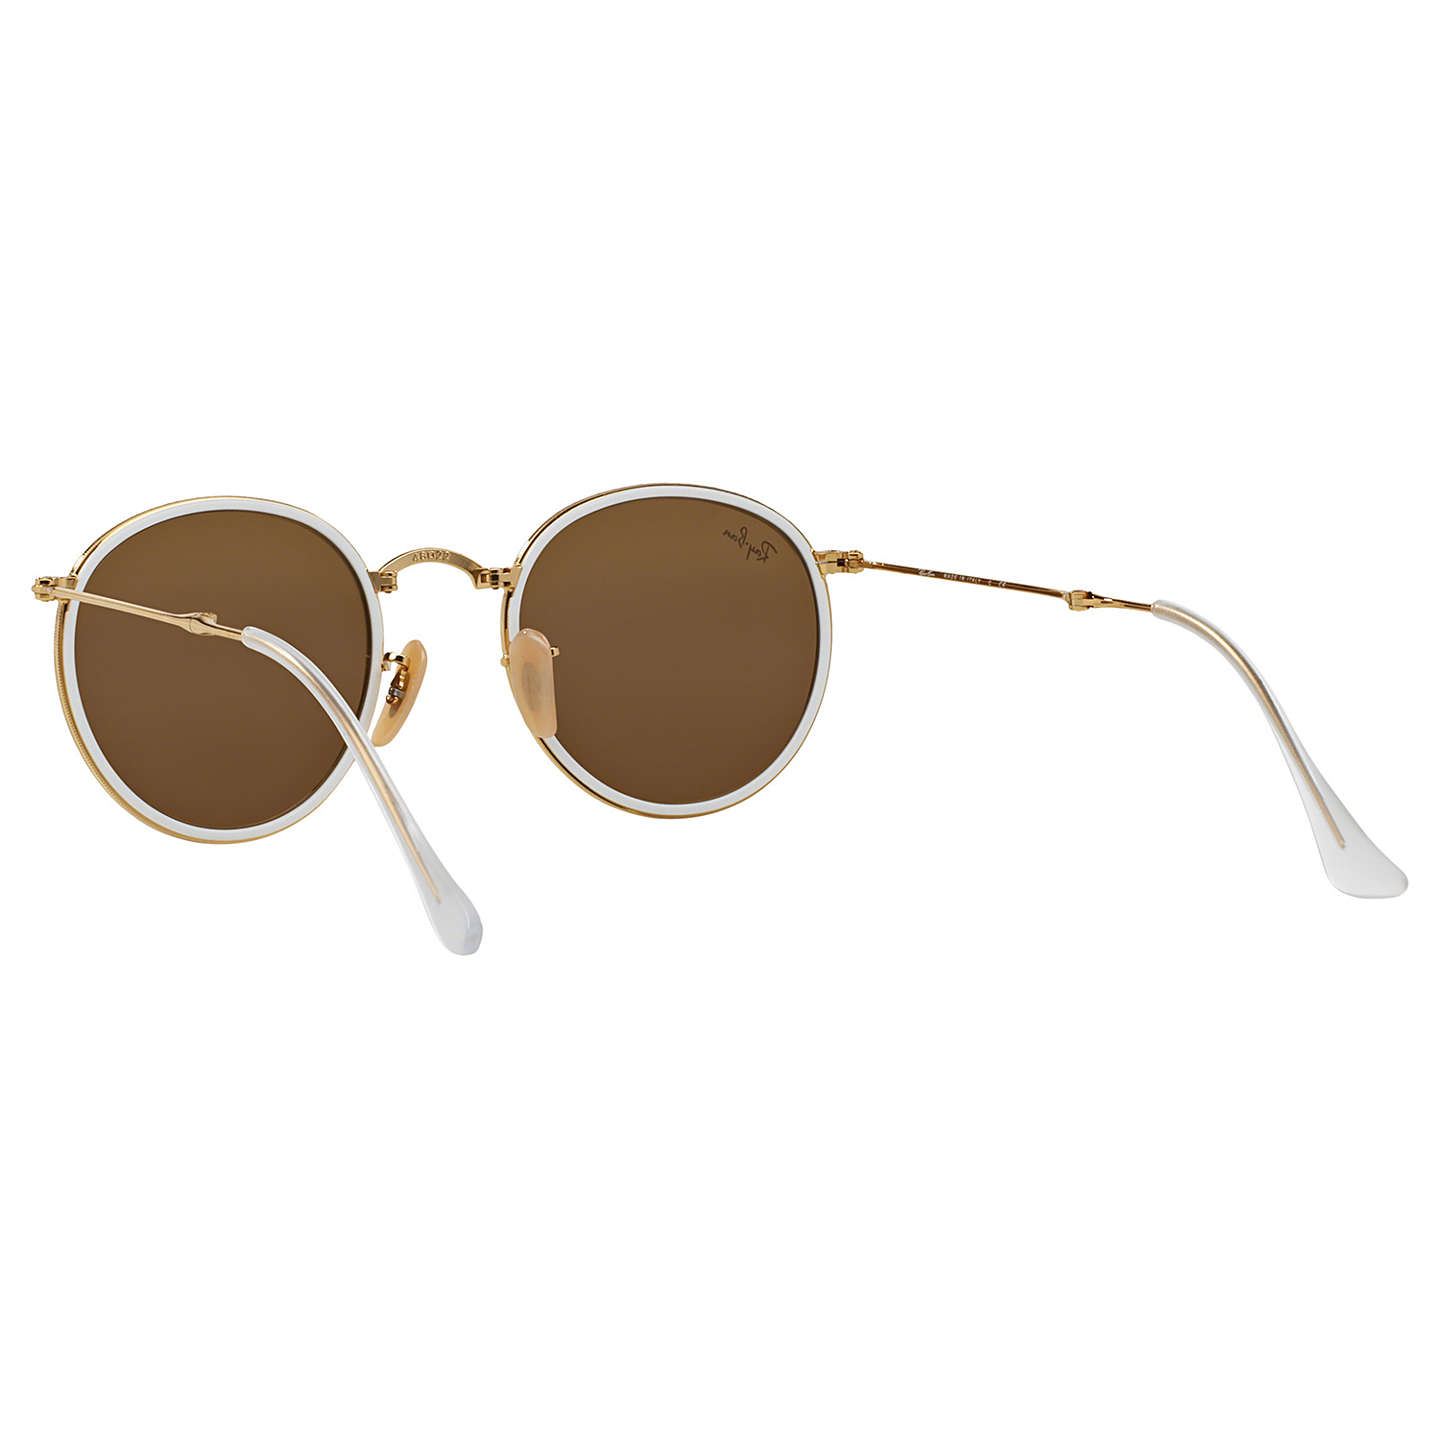 BuyRay-Ban RB3517 Round Folding Sunglasses, Gold/Yellow Flash Online at johnlewis.com